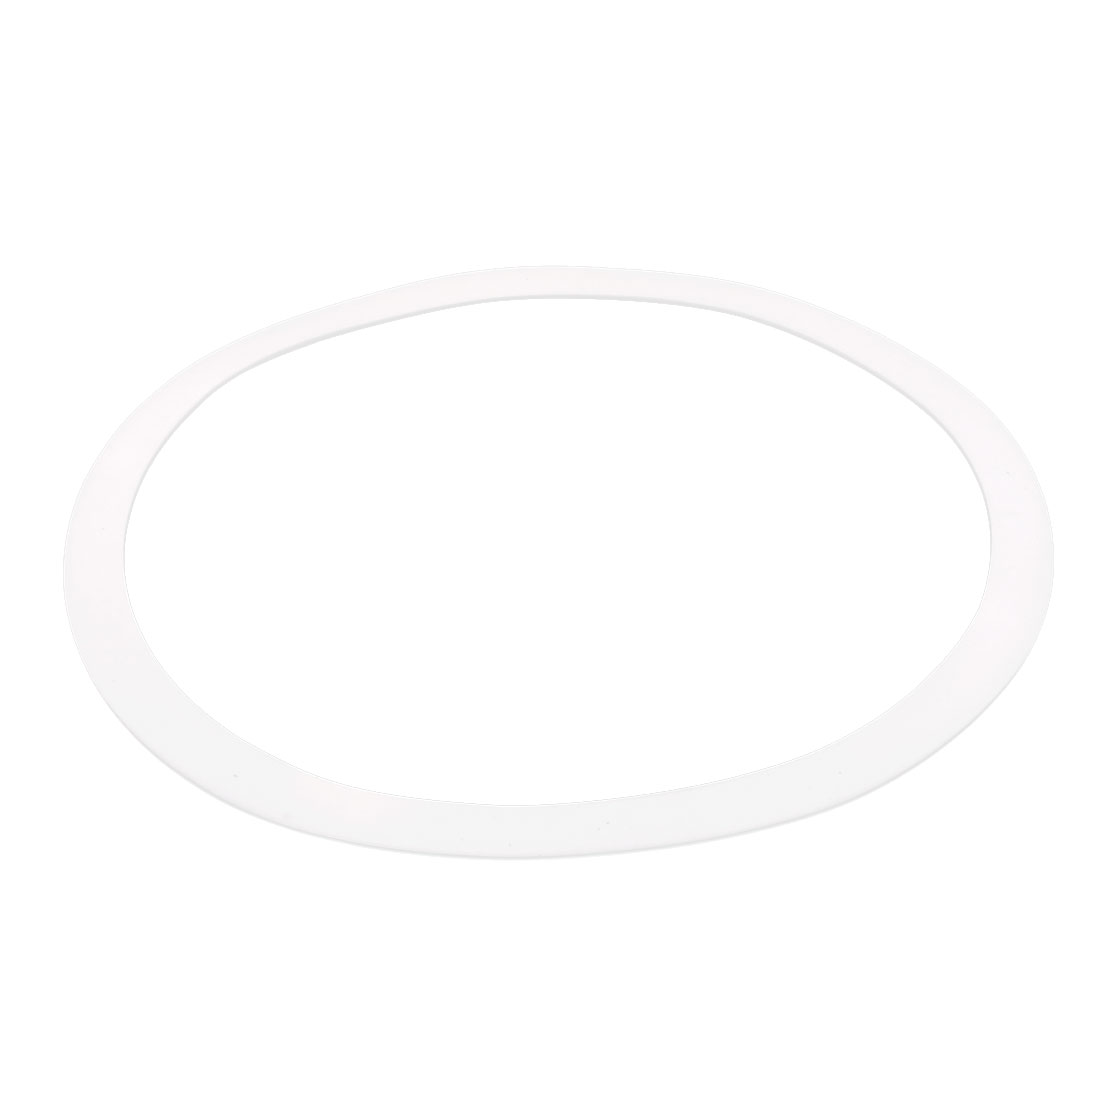 DN400 490mm x 426mm x 3mm PTFE Flange Gasket Sanitary Pipe Fitting Ferrule White